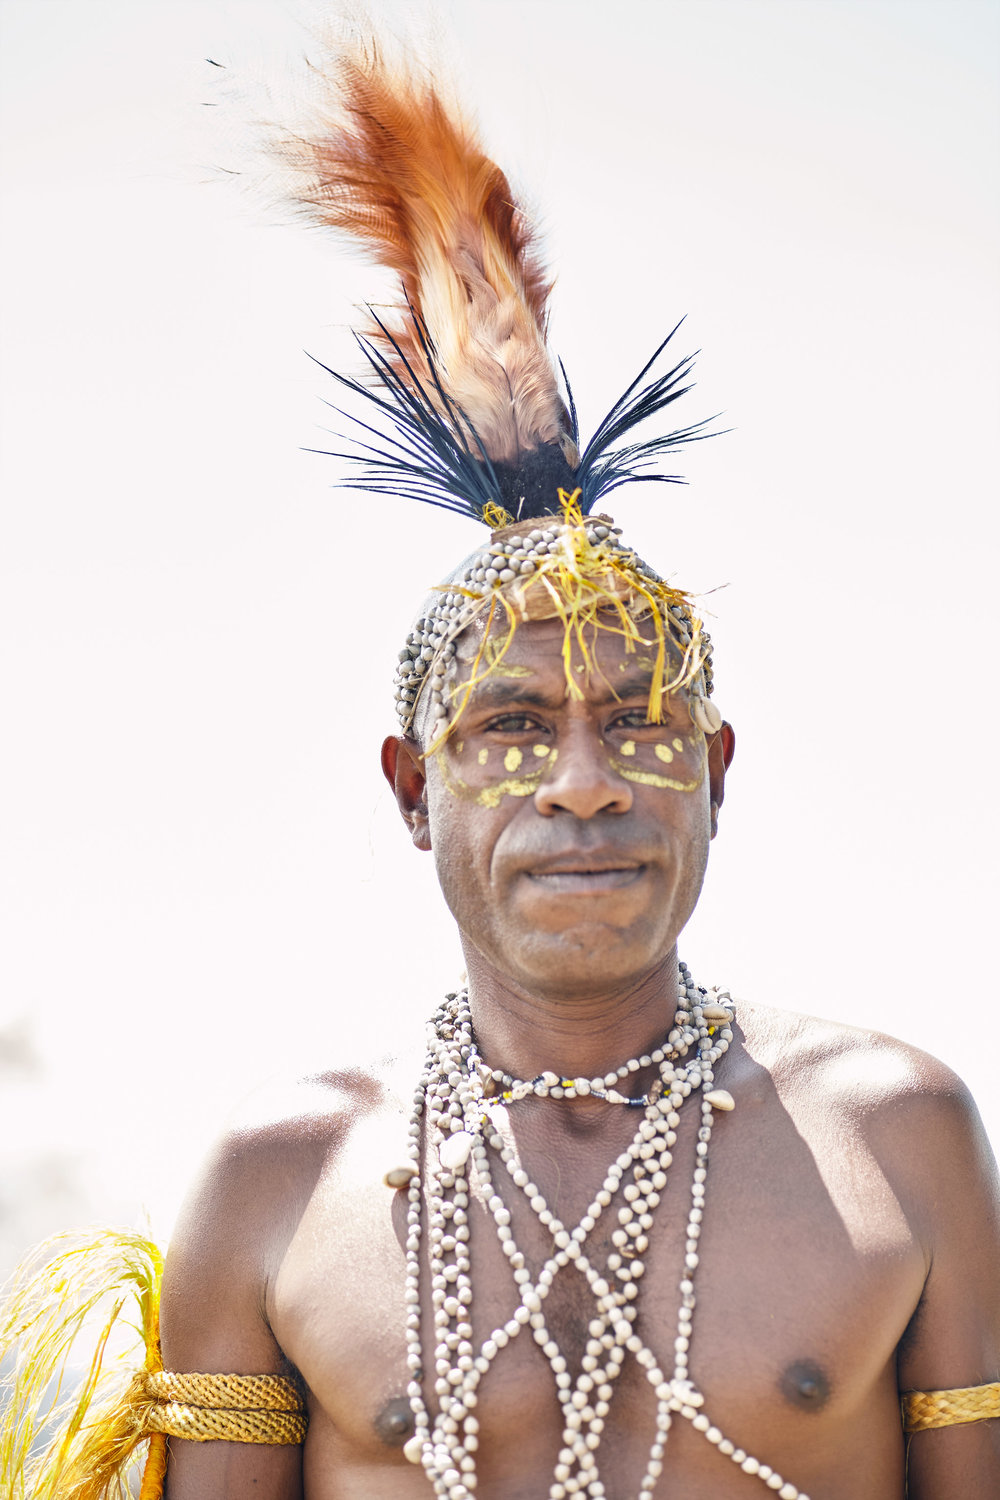 CHIEF OF BUKAWA TRIBE IN PAPUA NEW GUINEA